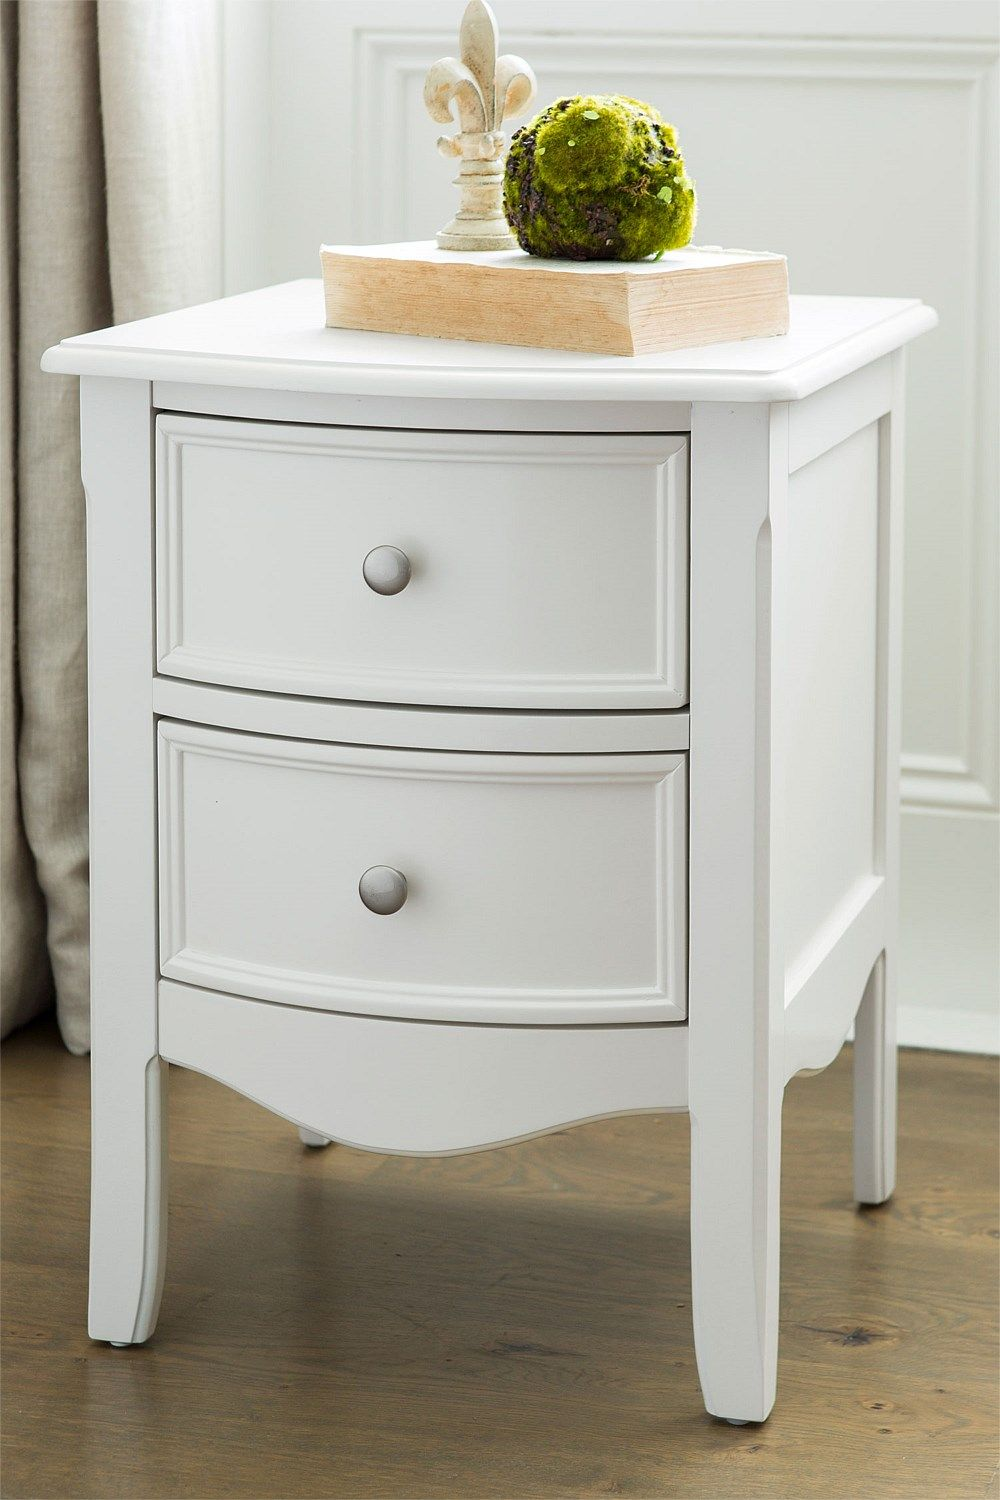 home decor rachel bedside table ezibuy new zealand - Home Decor Nz